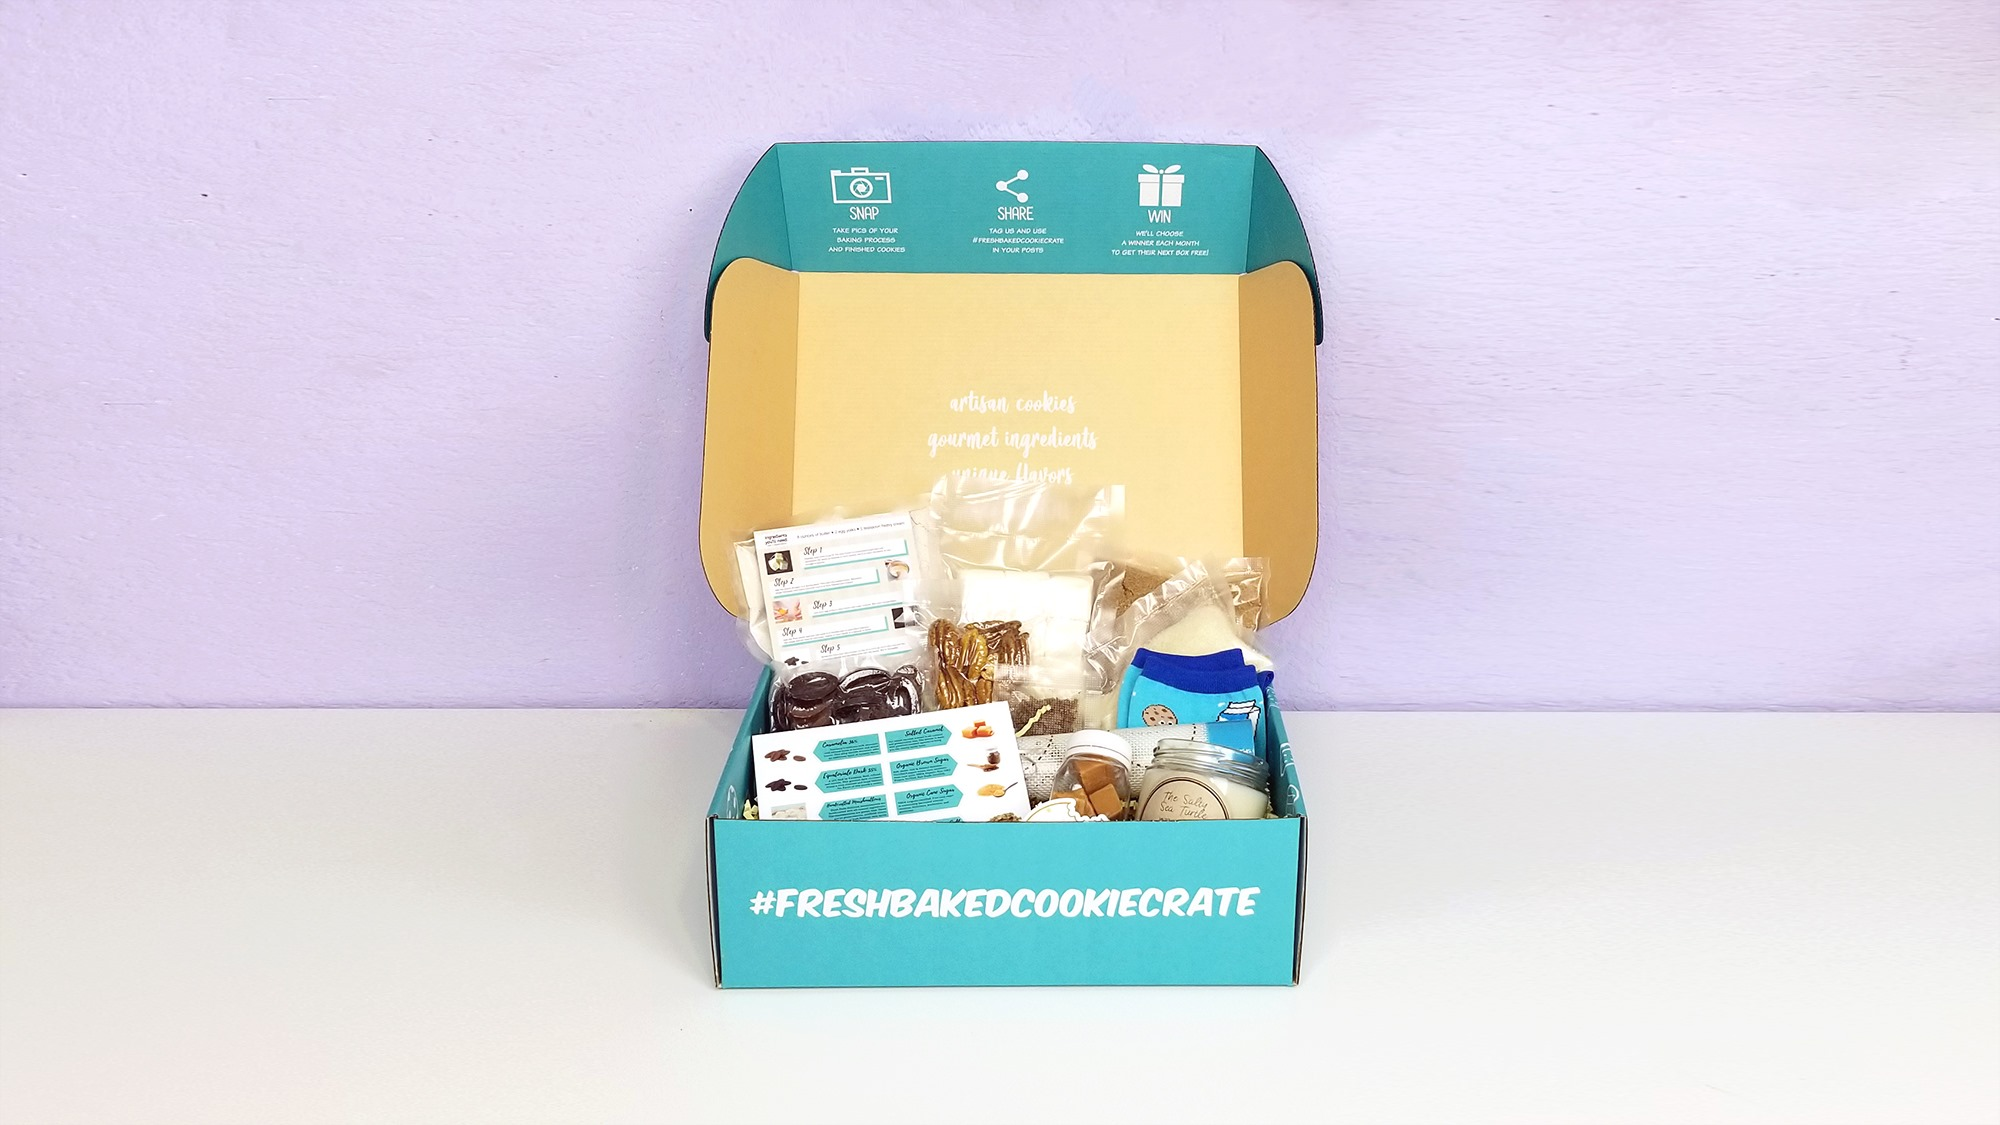 Fresh Baked Cookie Crate Cyber Monday Coupon – Save 30% On Entire Subscription!